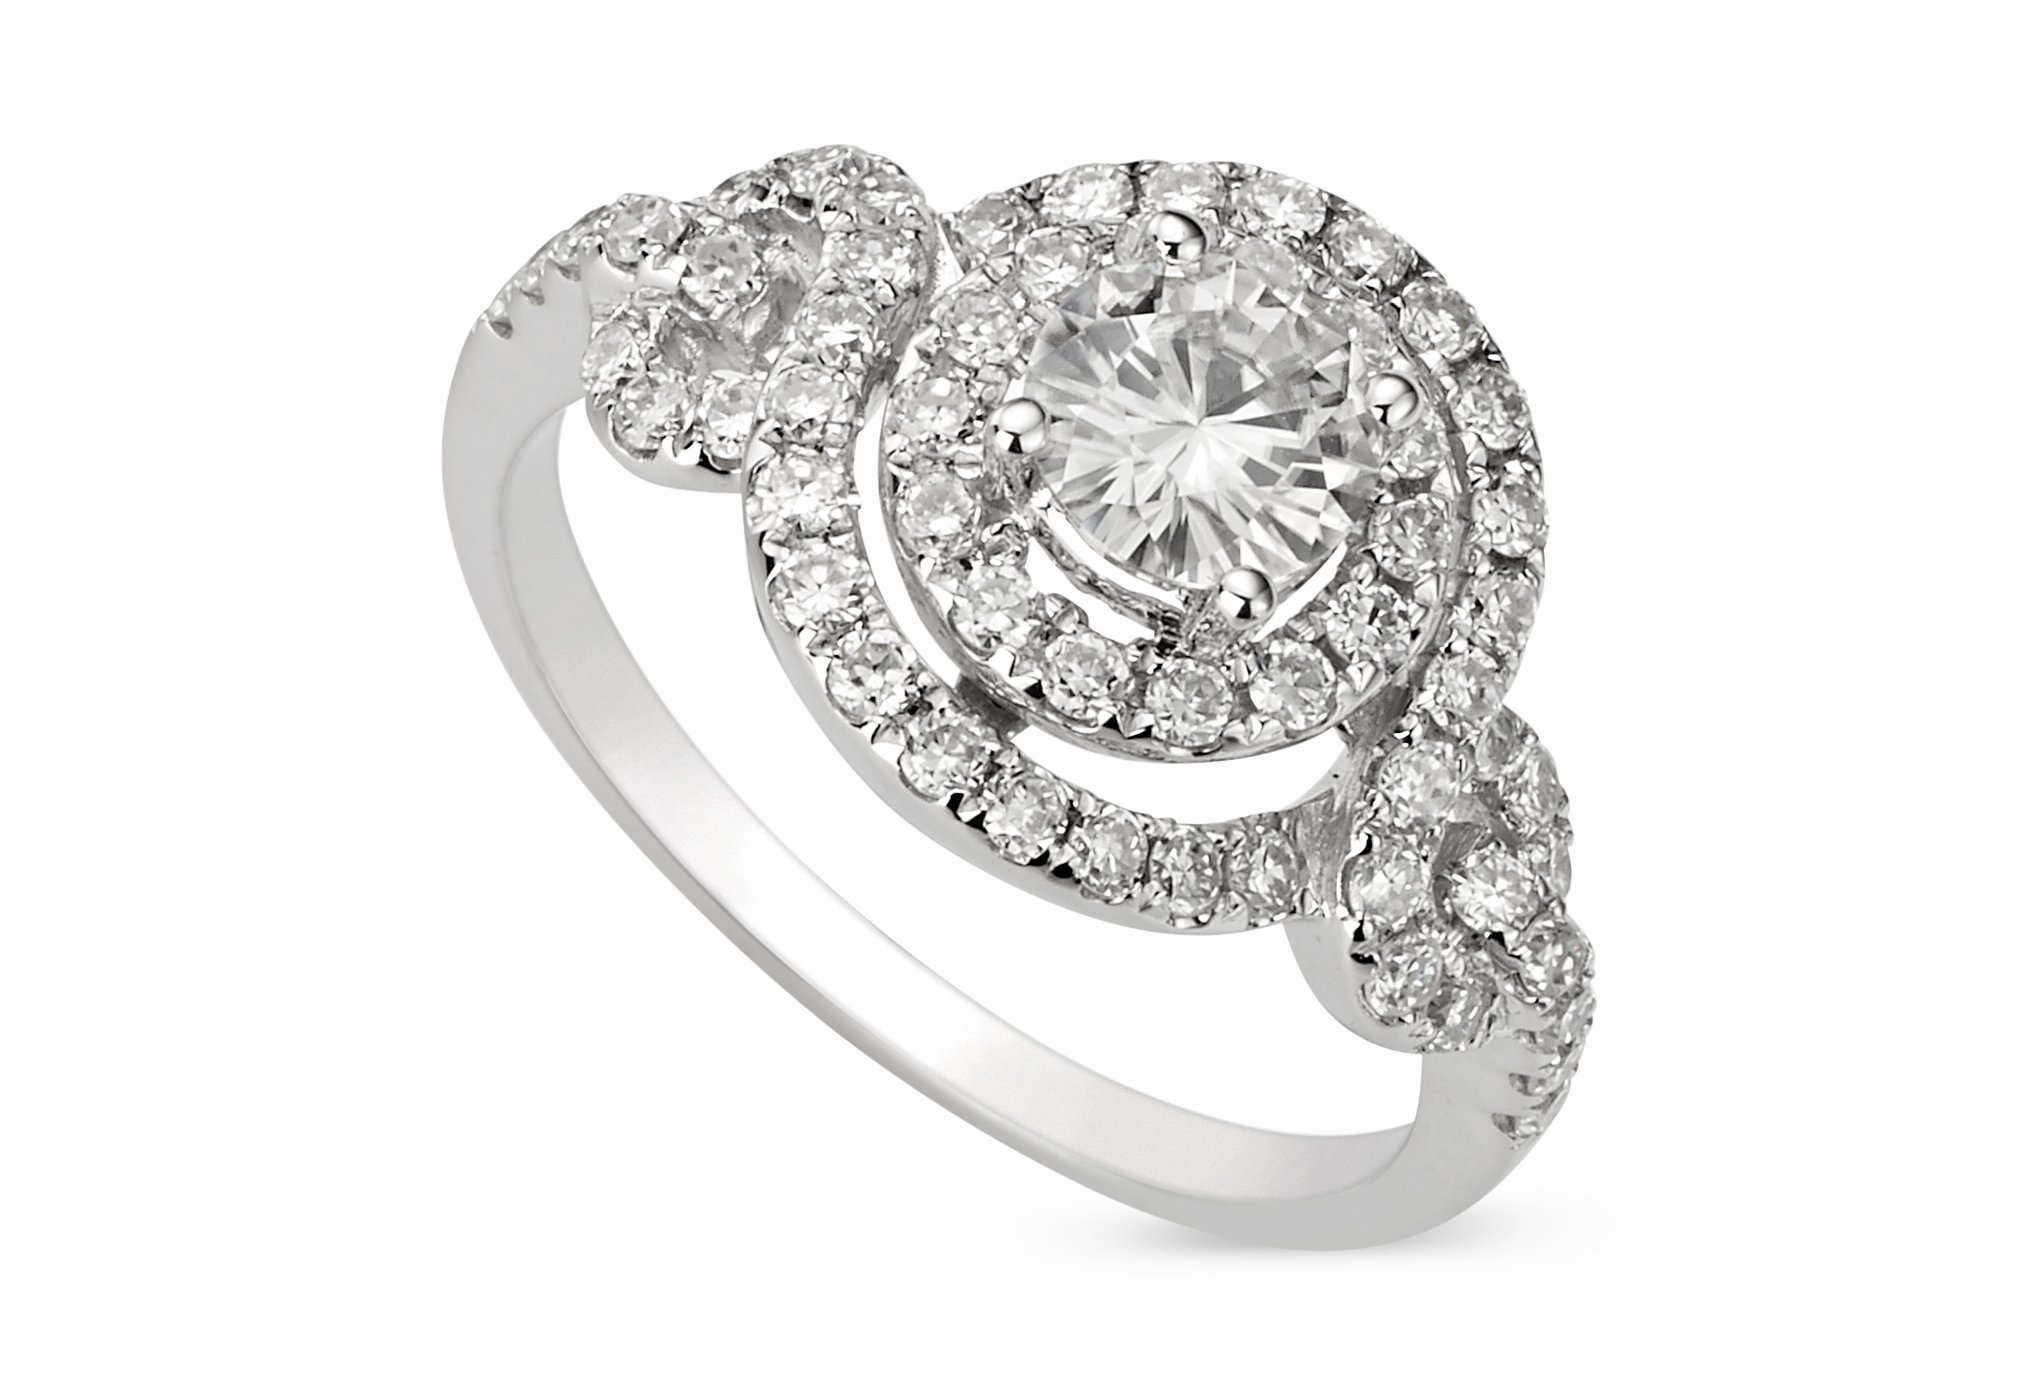 Forever Classic Round 5.5mm Moissanite Ring-size 9, 1.18cttw DEW By Charles & Colvard